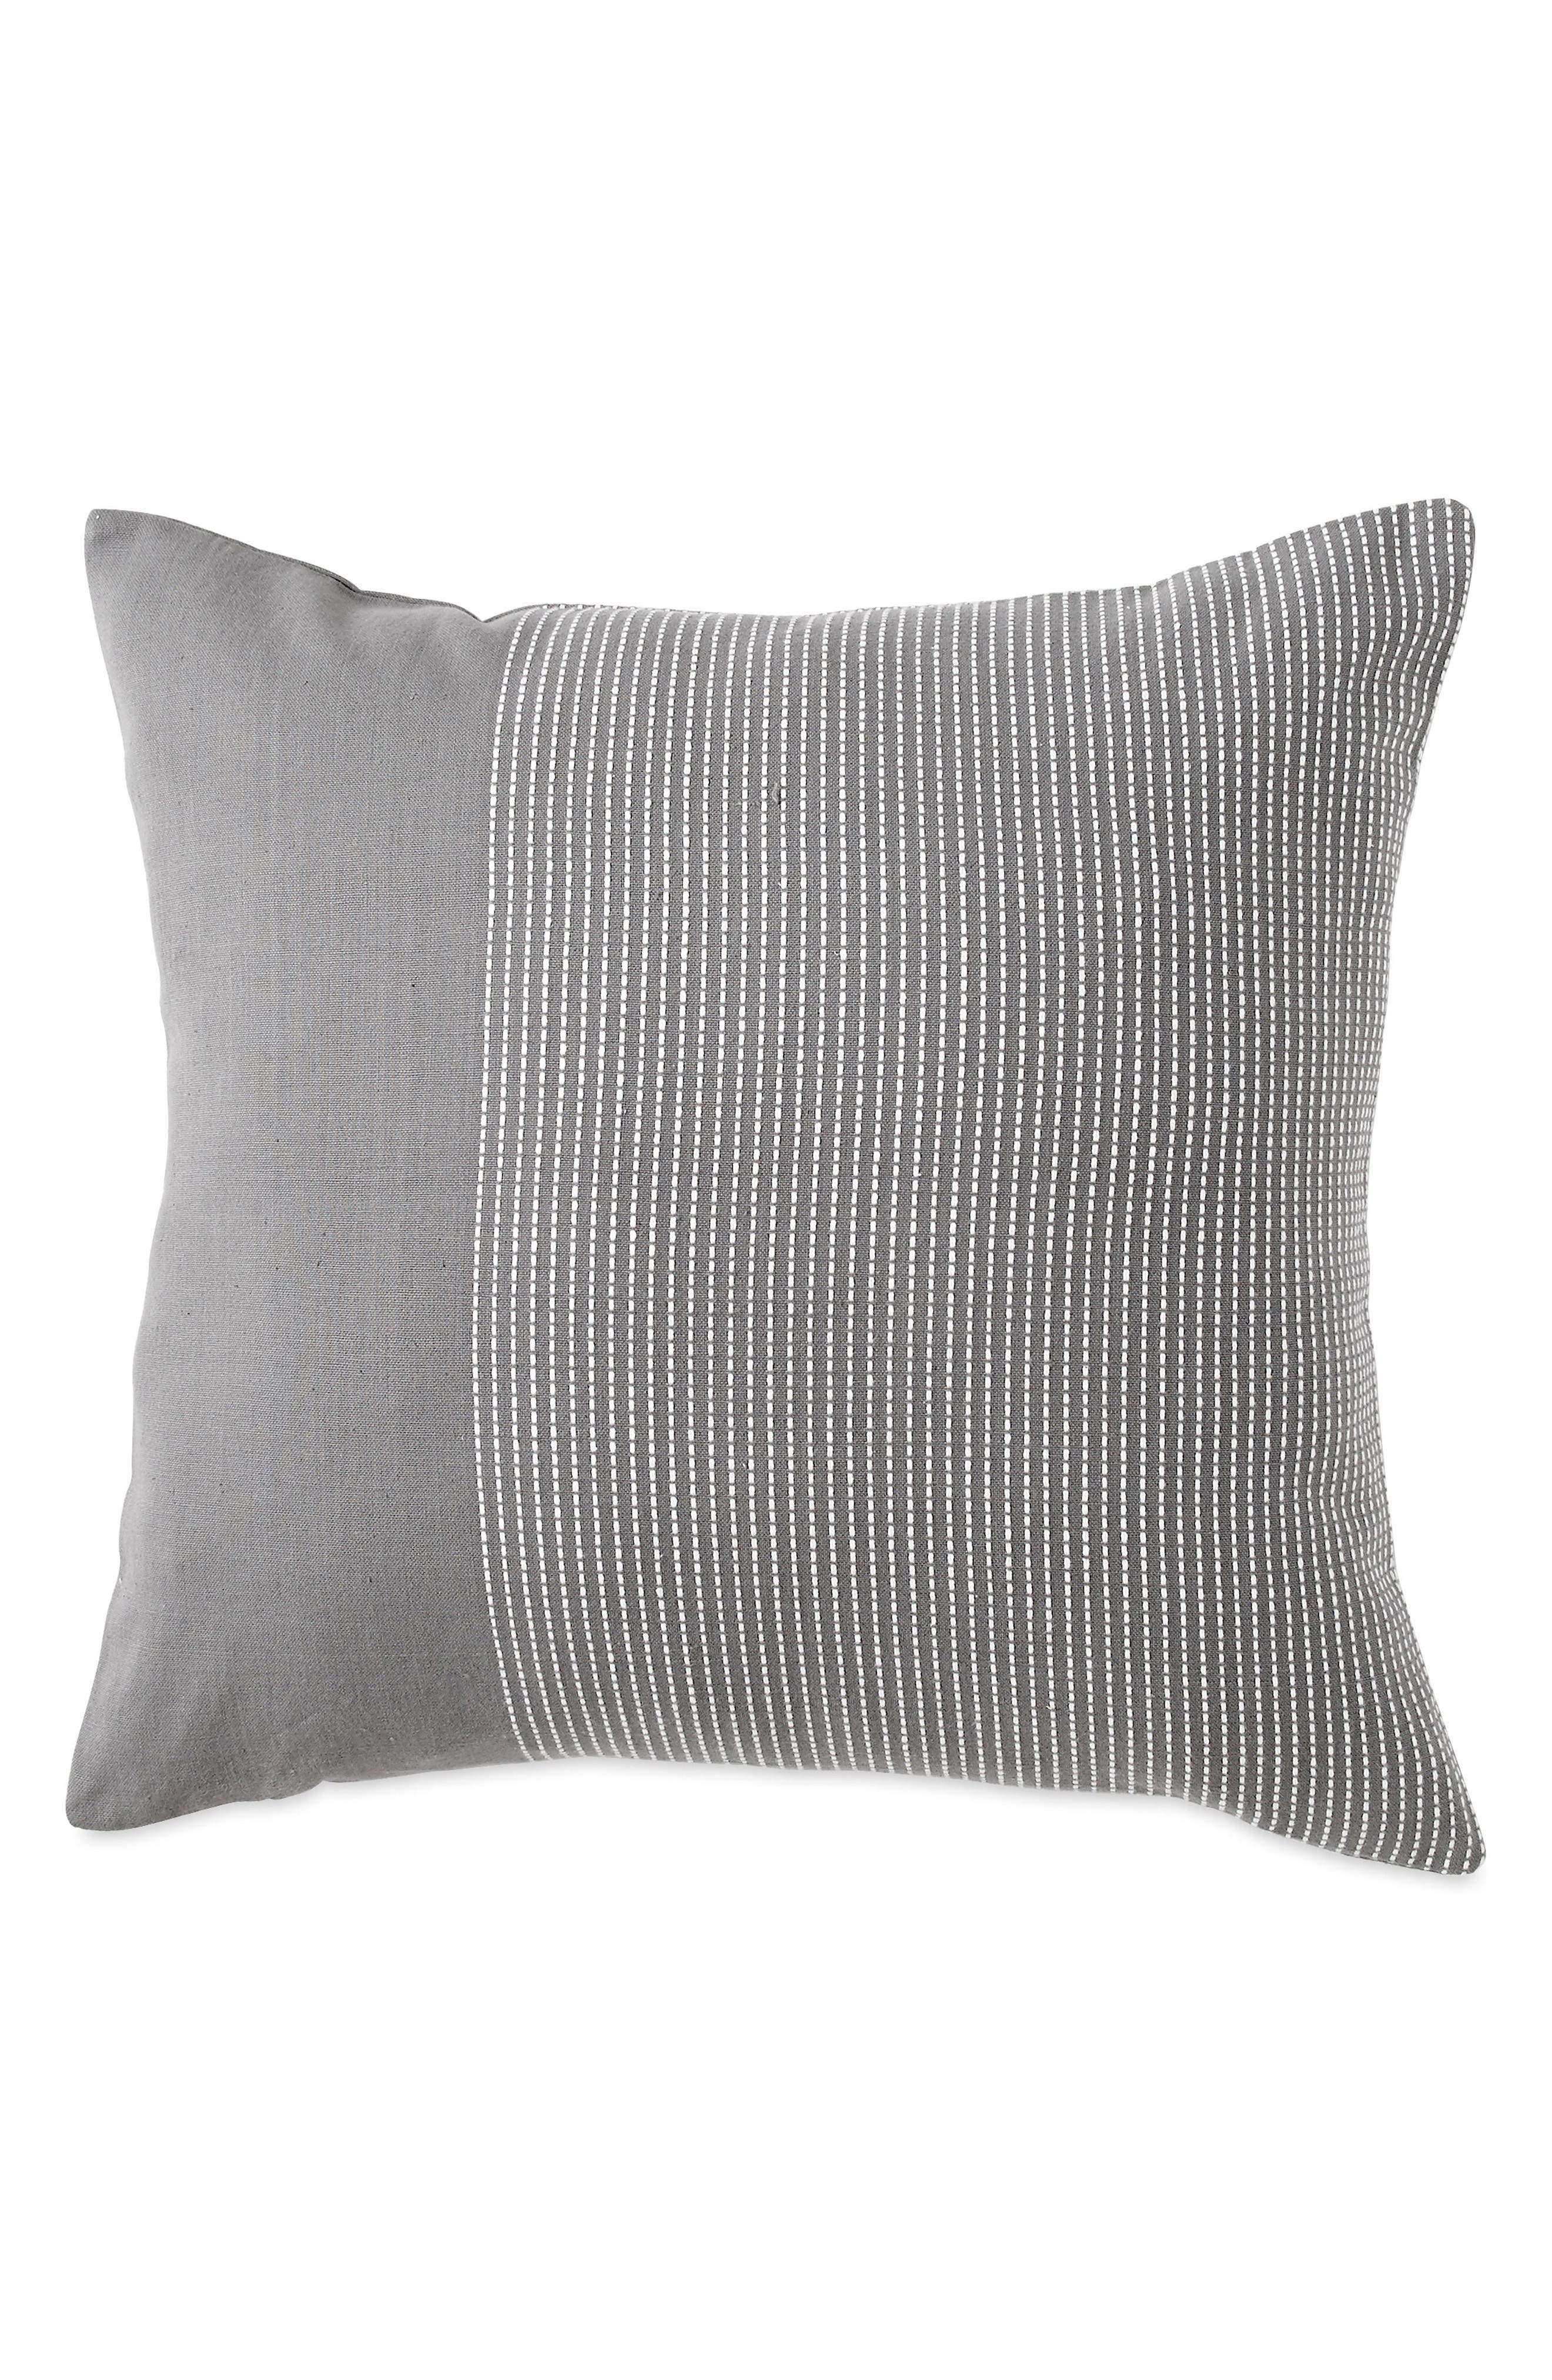 DKNY Stripe Accent Pillow